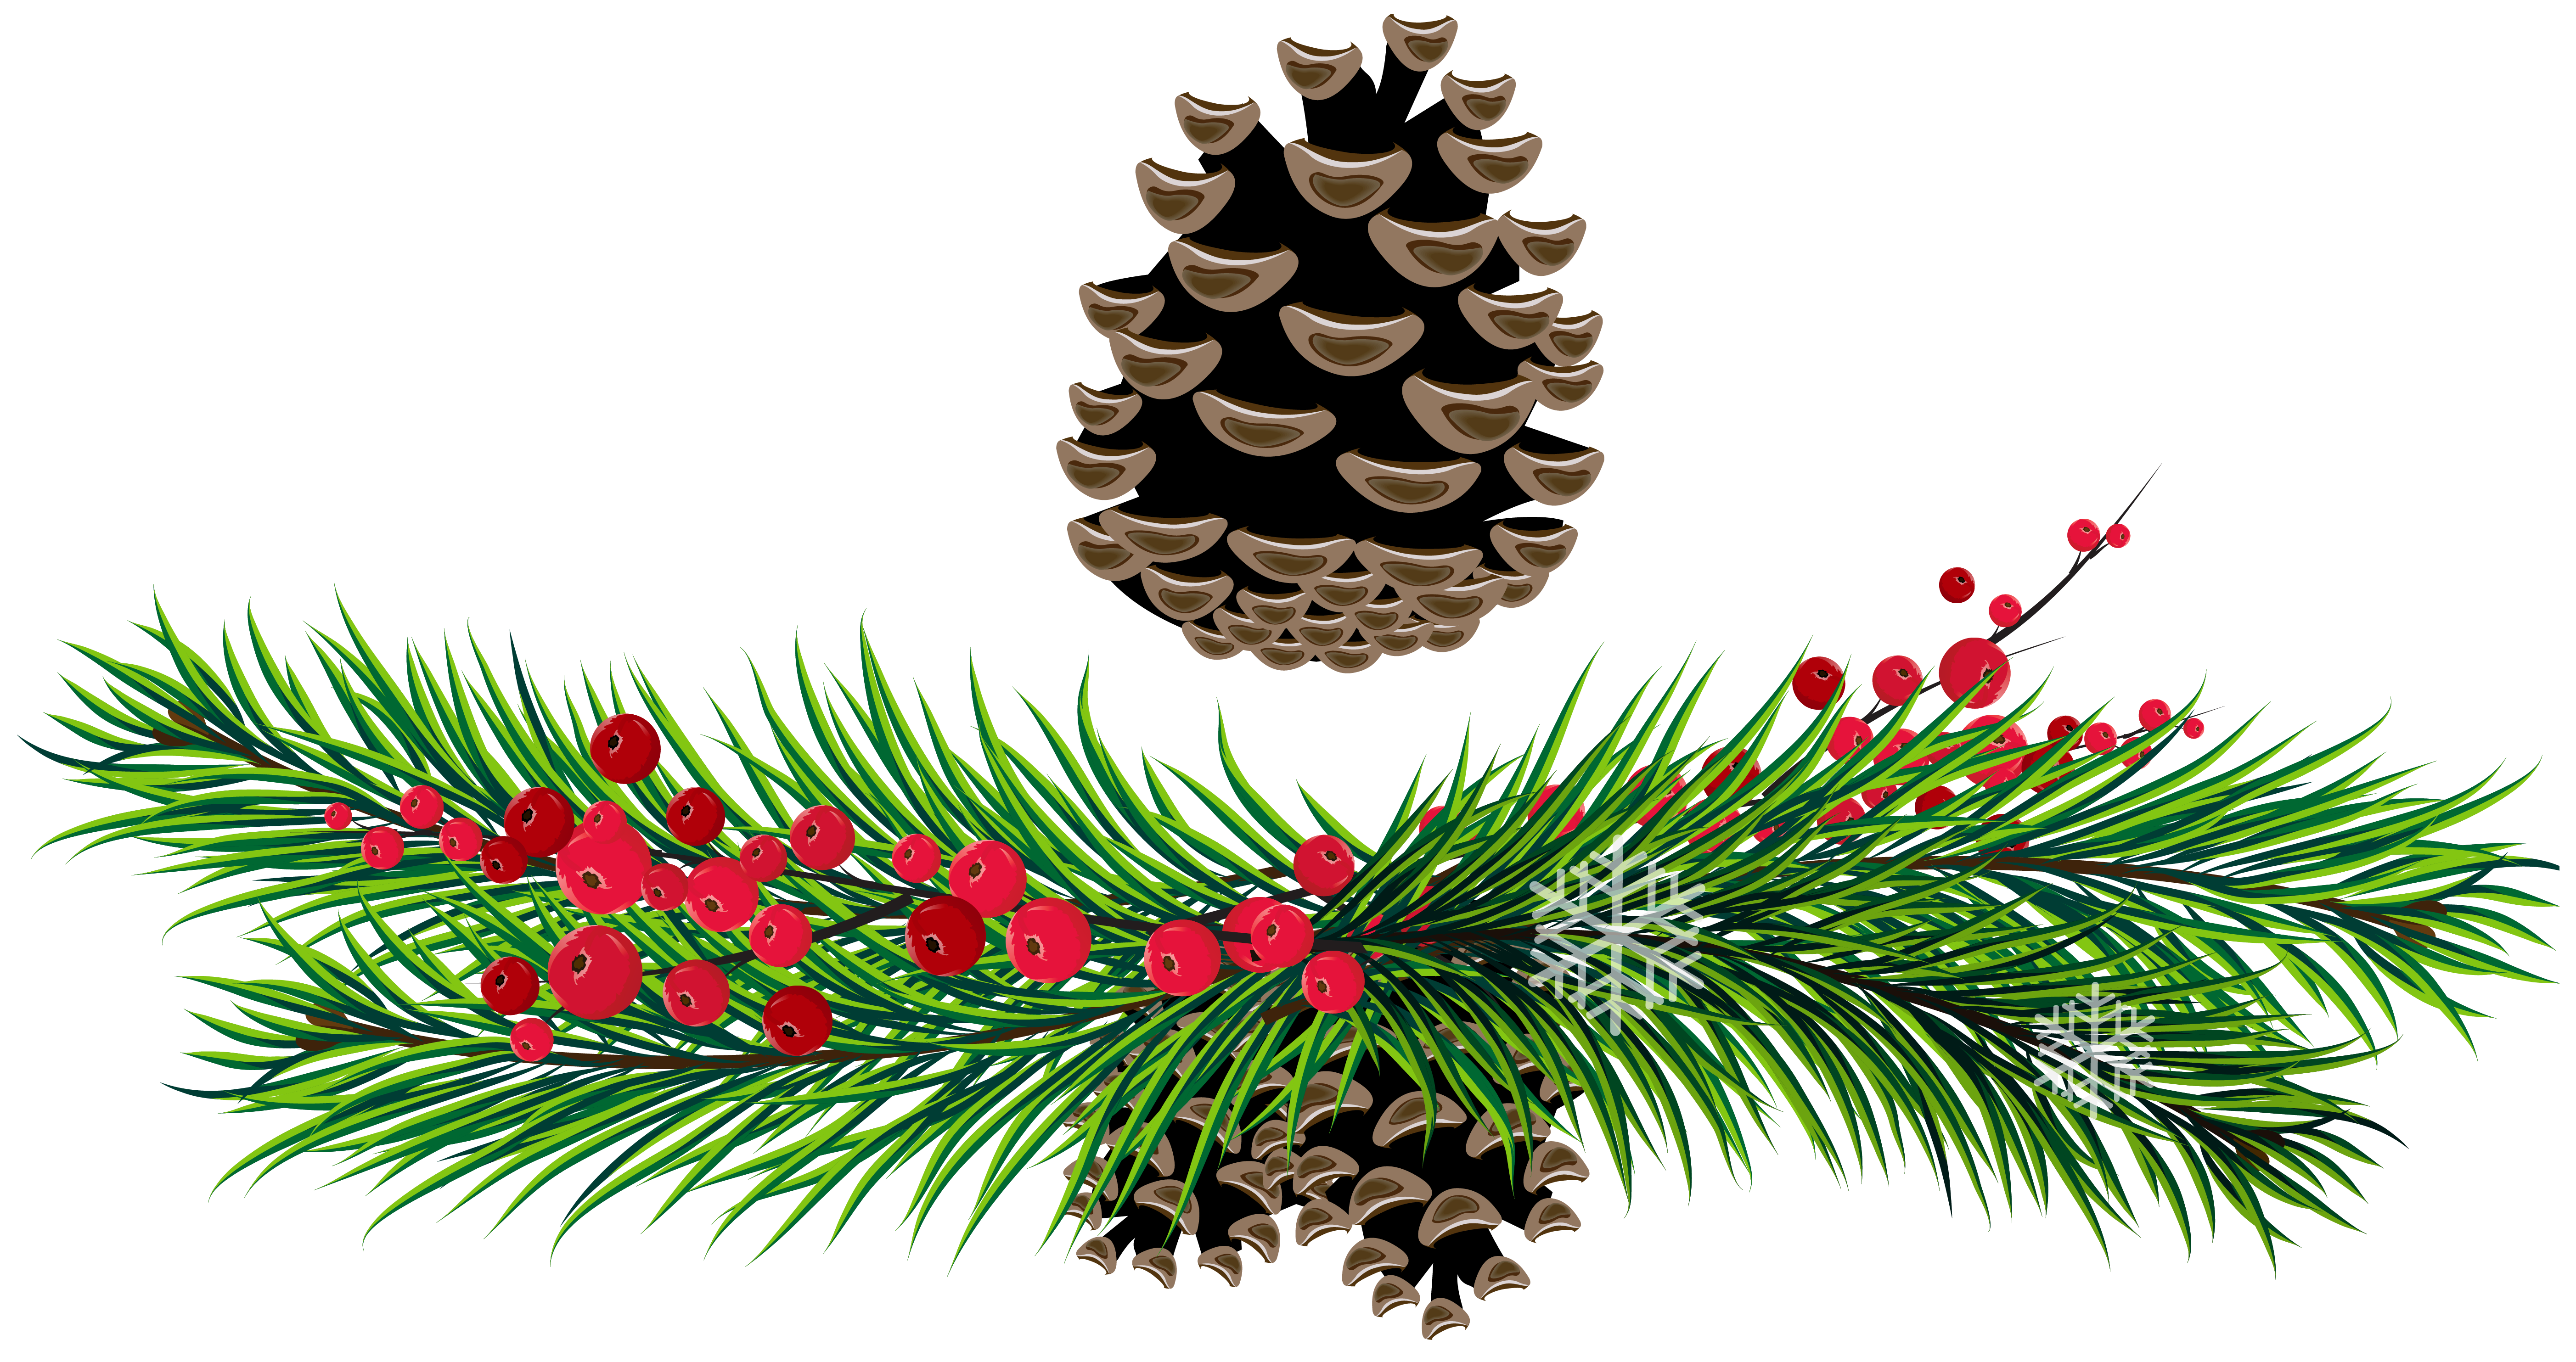 Pine branches and cones. Holidays clipart pinecone